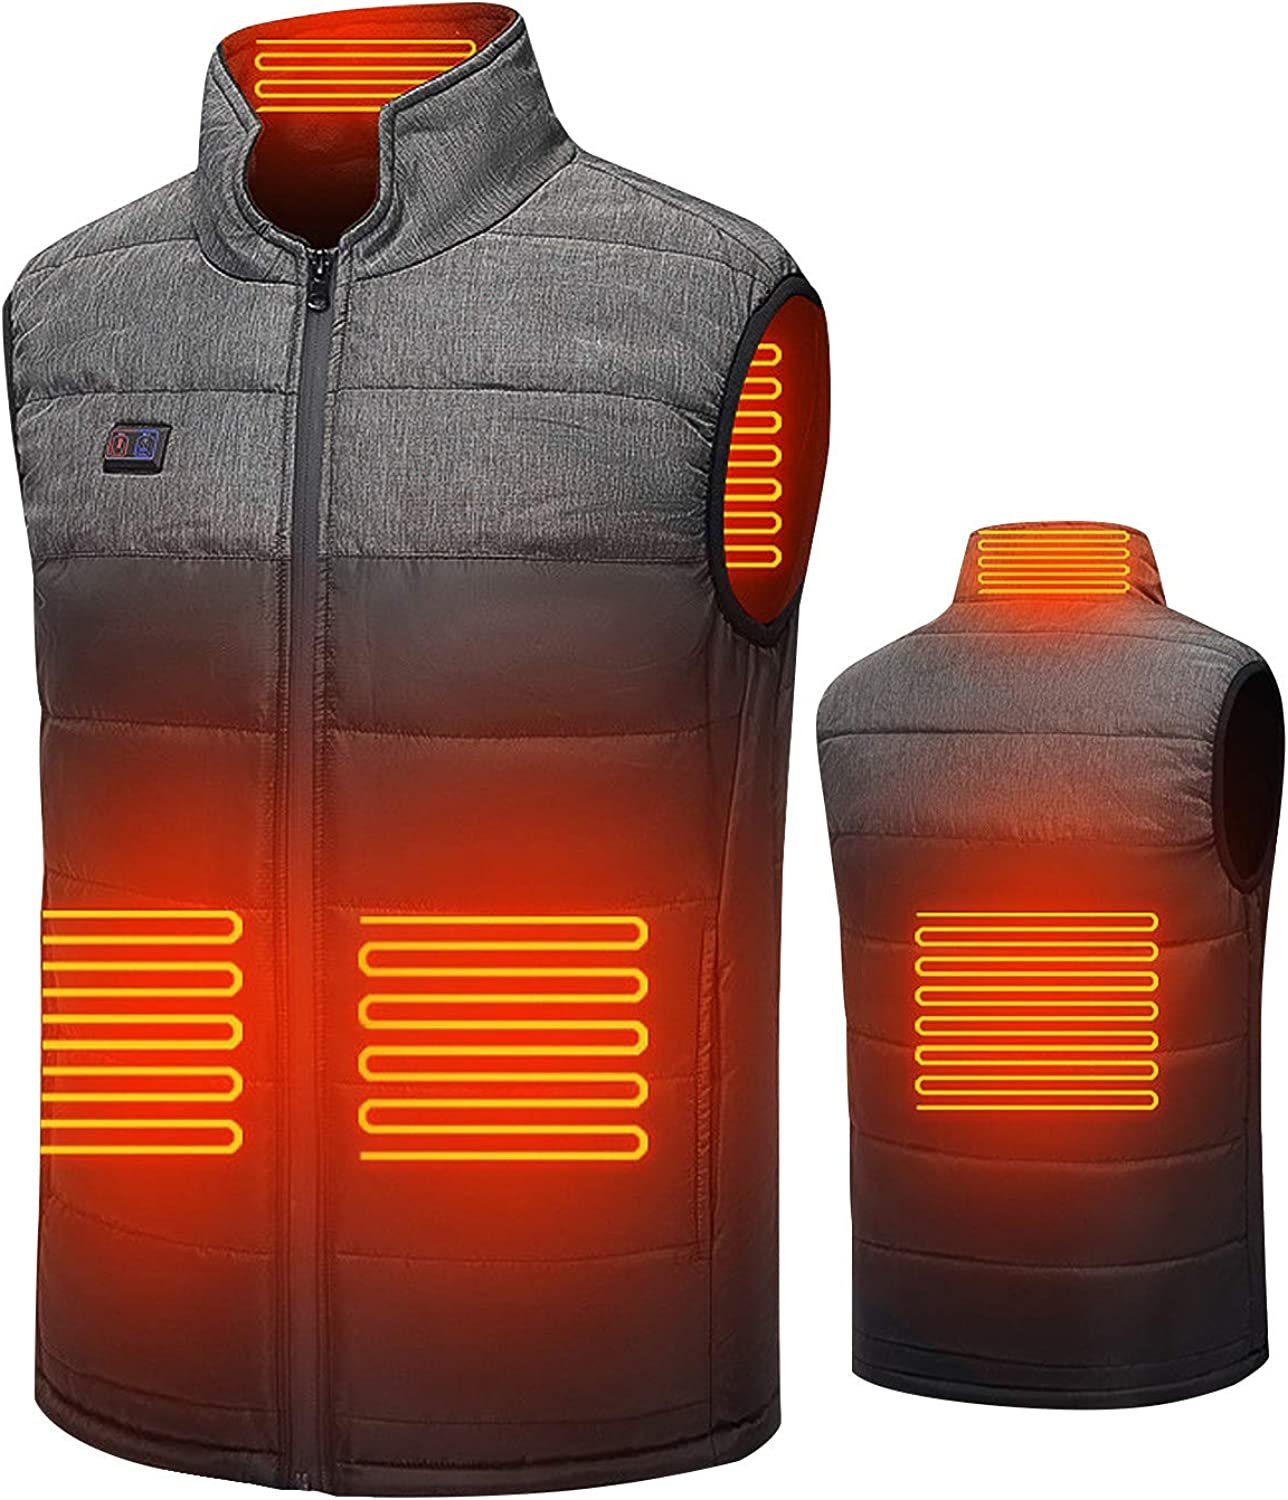 Free shipping Heated Vest Electric Warm Heating High quality for Men Camping Jacket Women